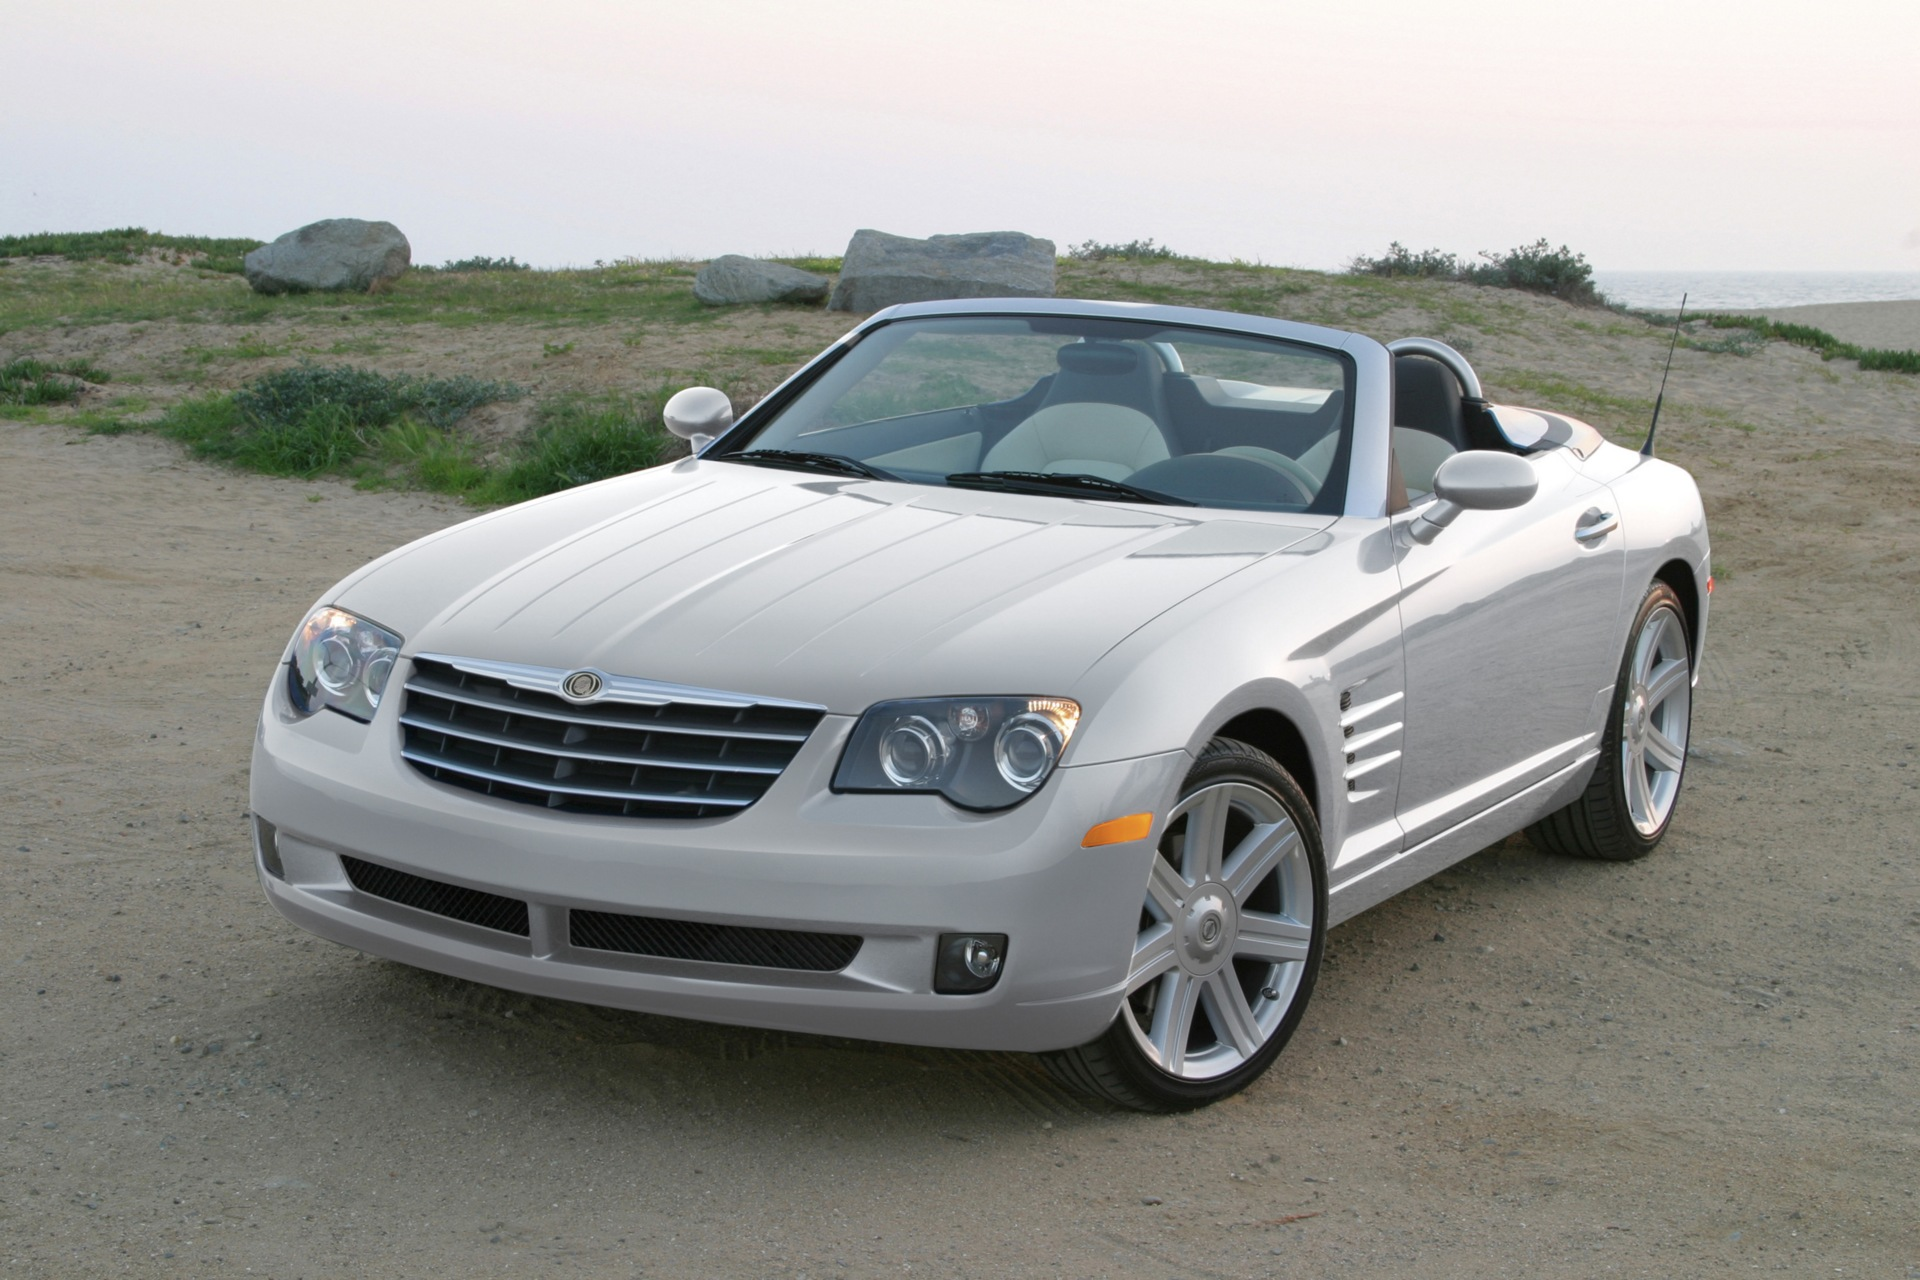 Chrysler Crossfire 2003 - 2007 Coupe #2